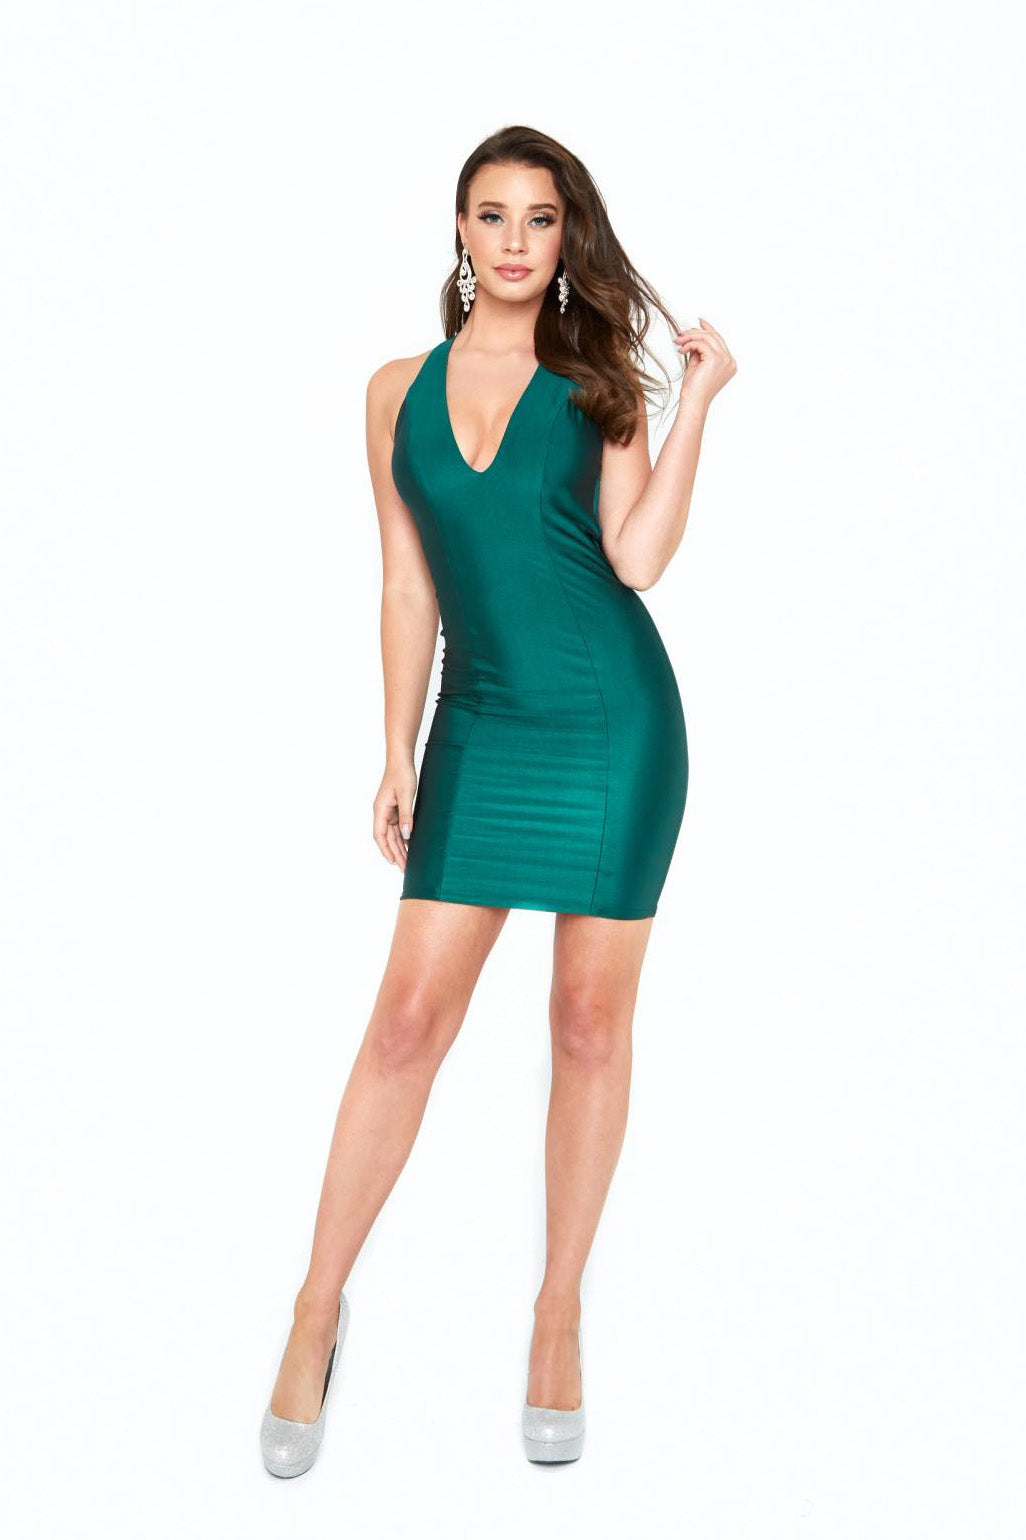 atria 6009 green halter dress